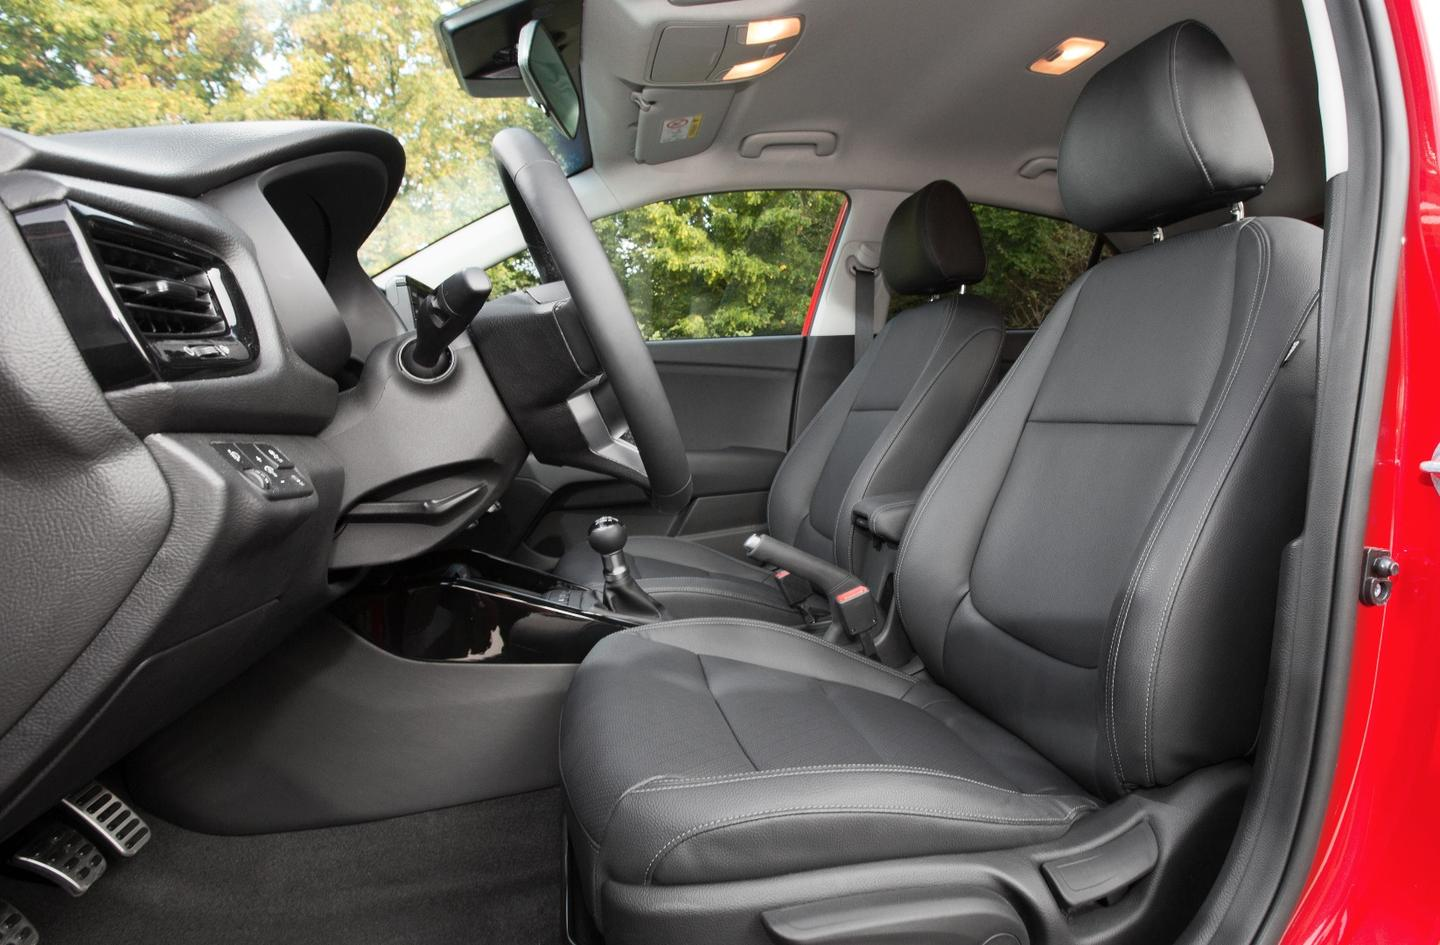 The cabin of the new Rio is a big step forward for the brand